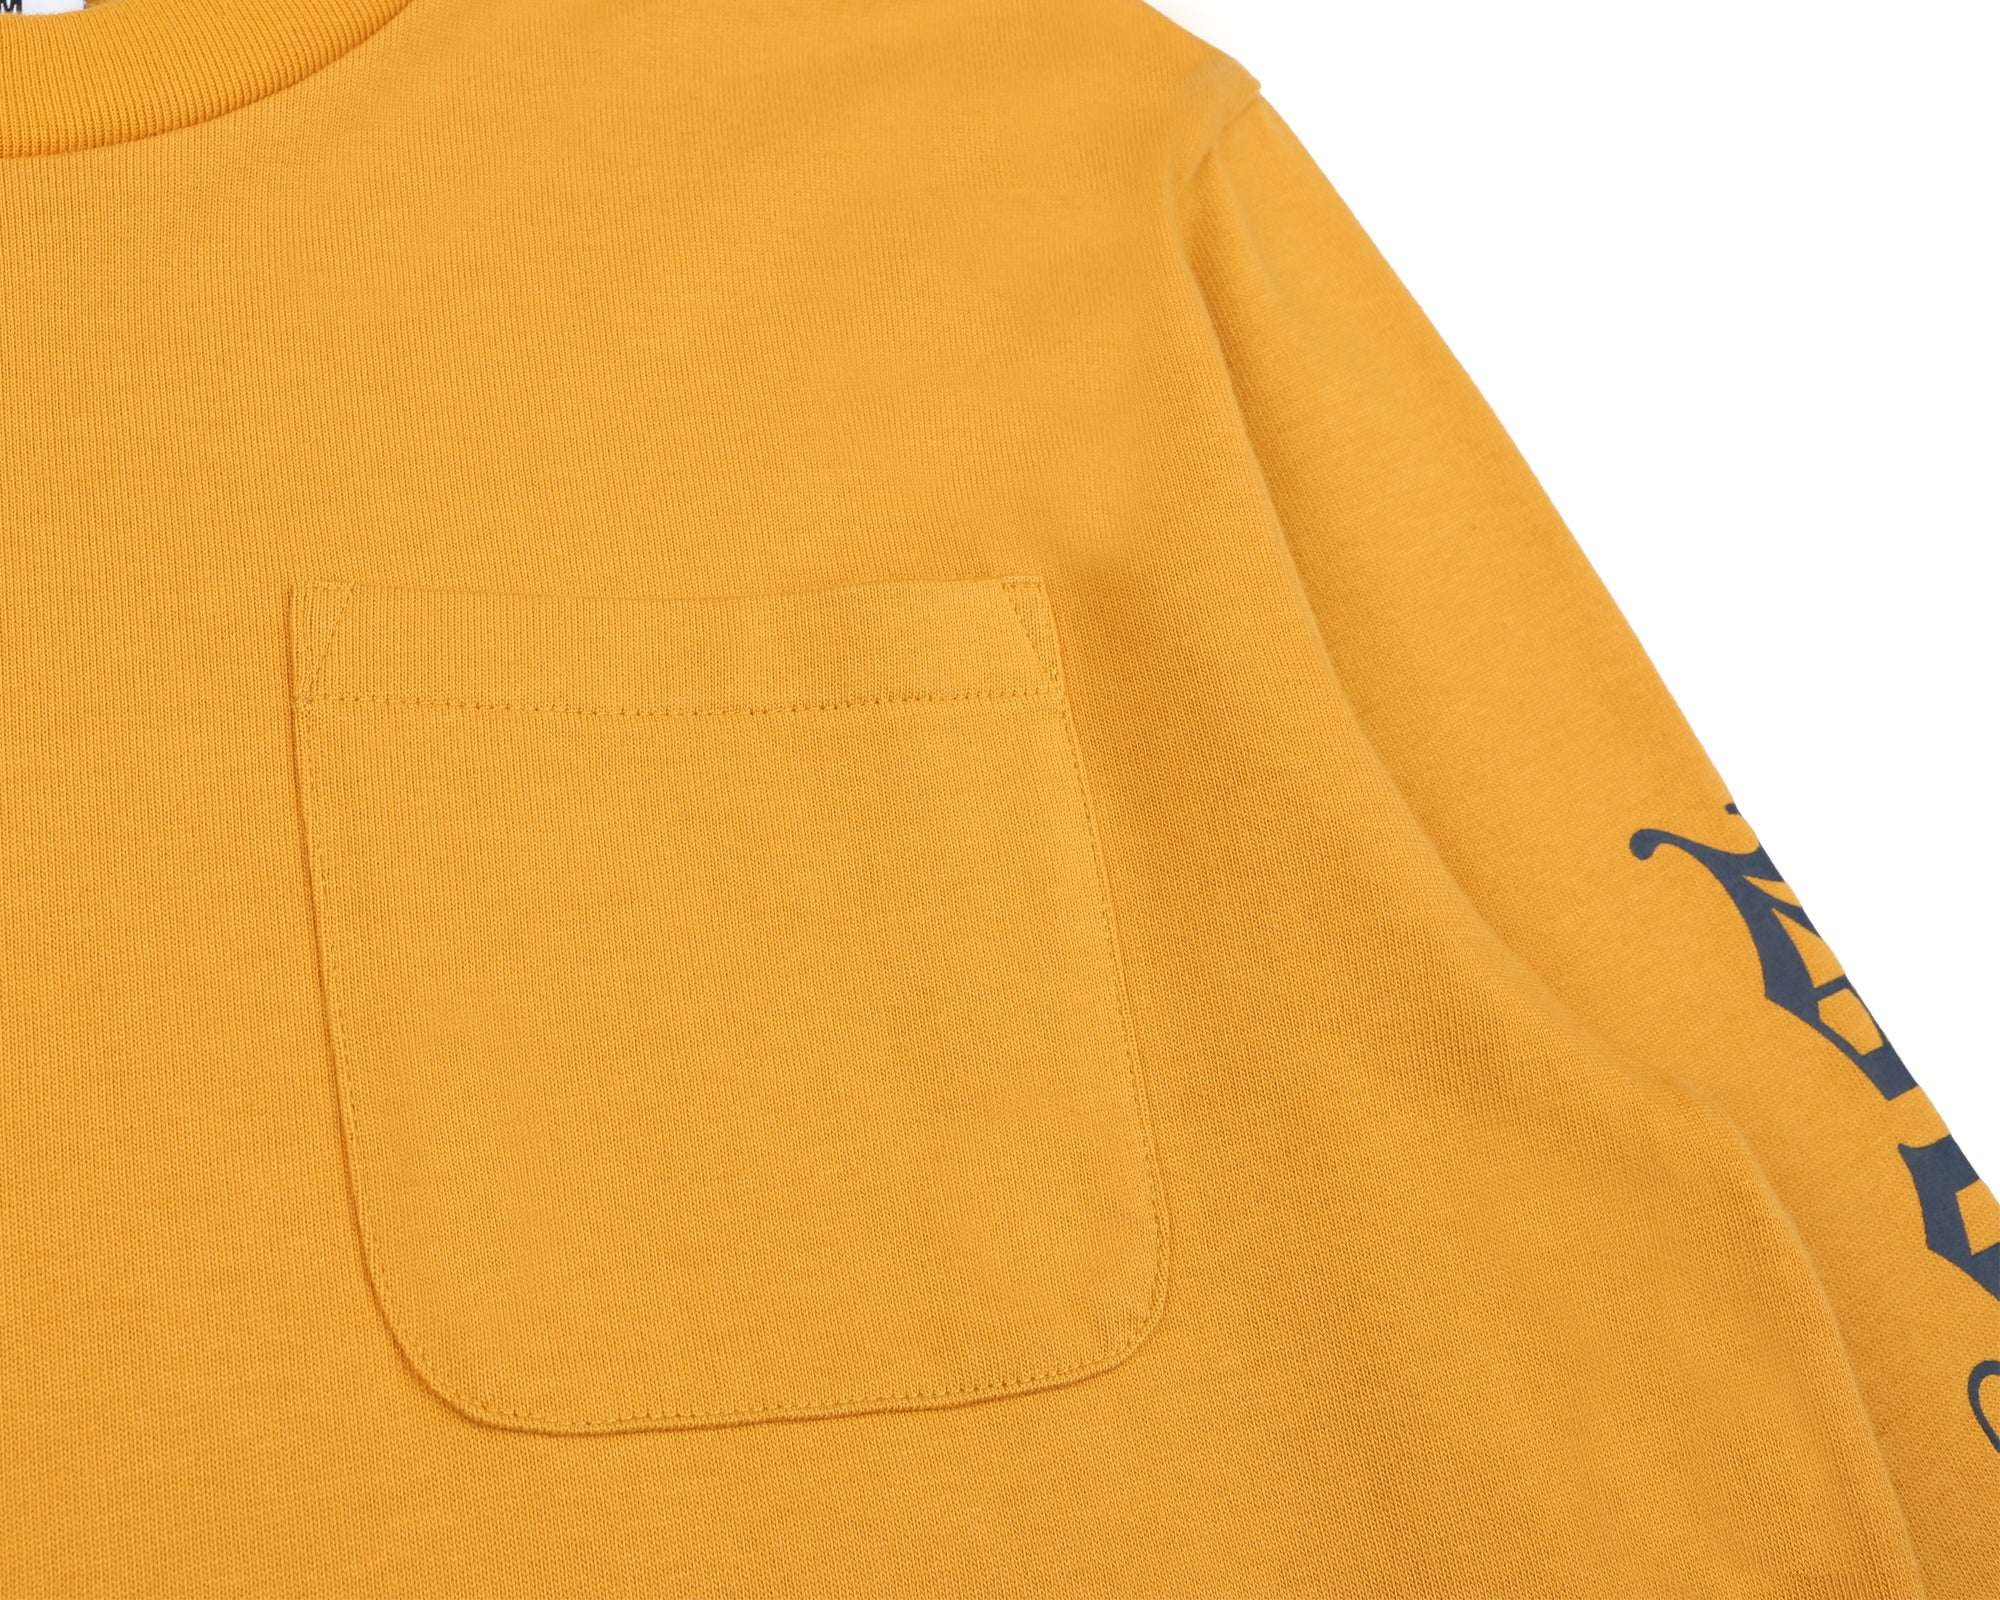 COLLEGE L/S POCKET T-SHIRT - YELLOW